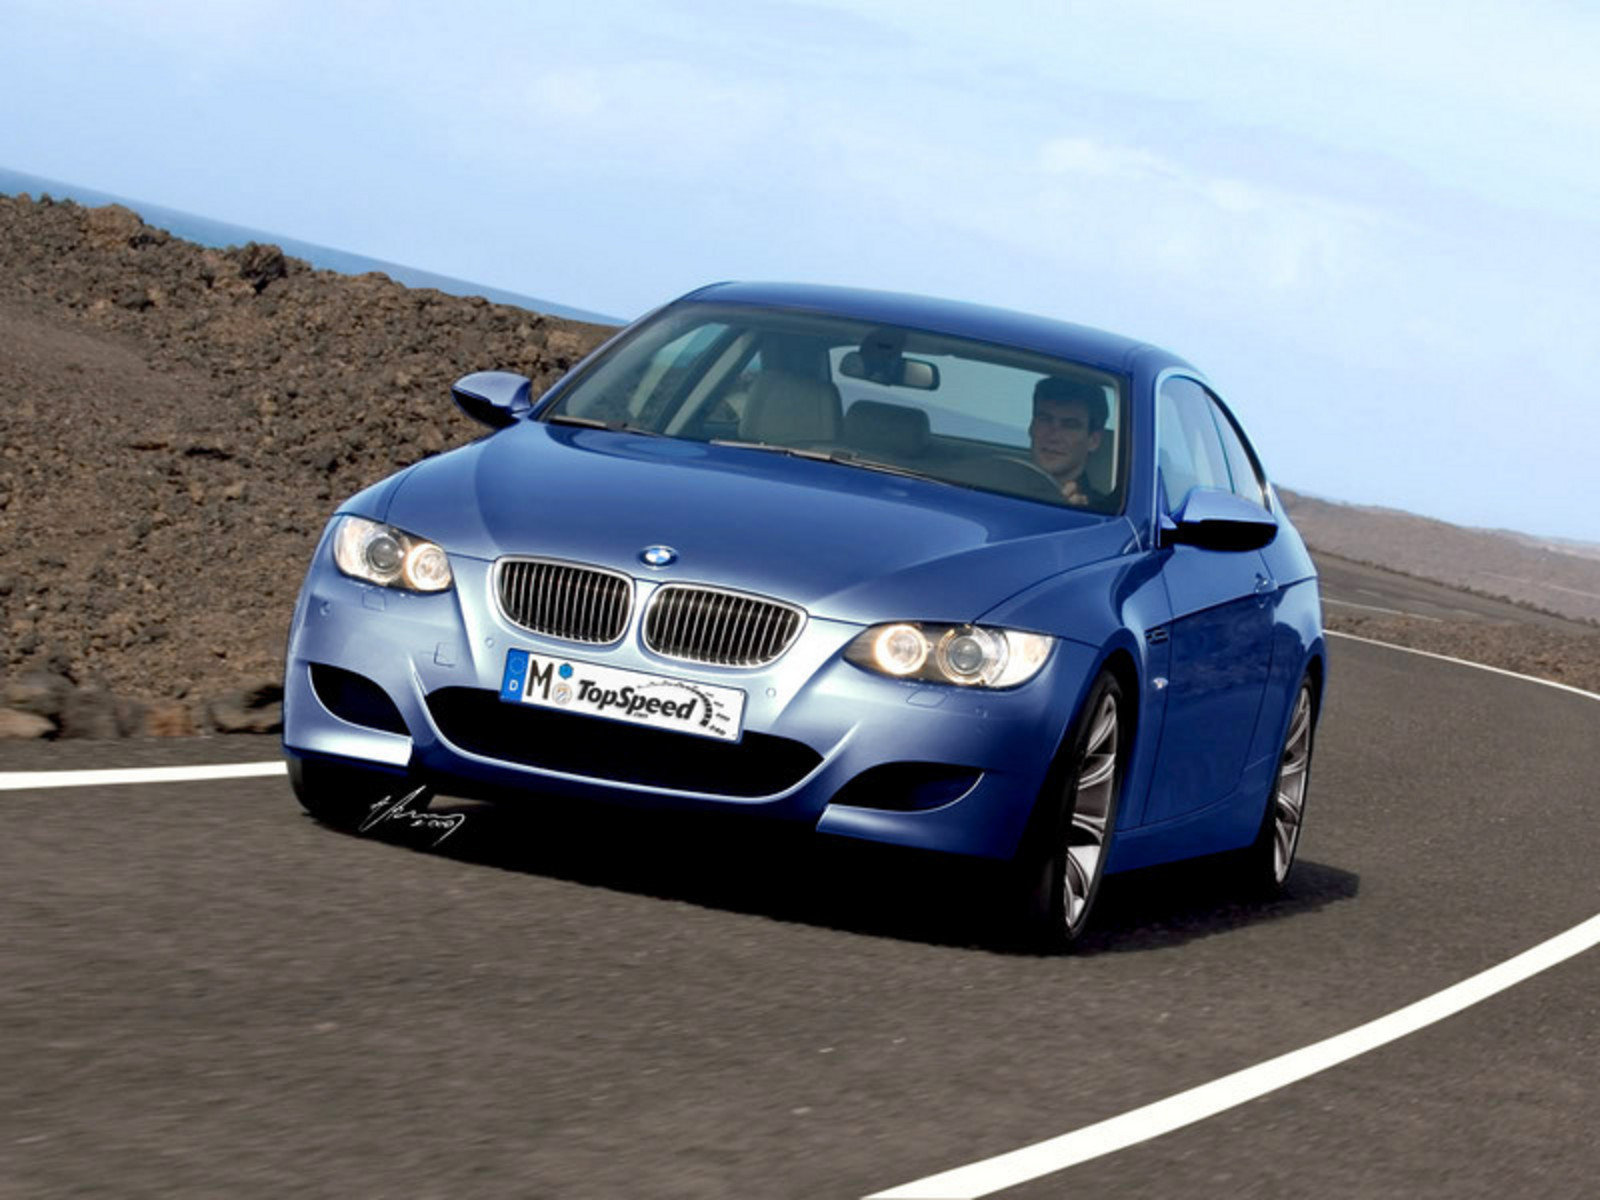 BMW M3 Convertible >> 2007 BMW E90 M3 Preview Gallery 84433 | Top Speed